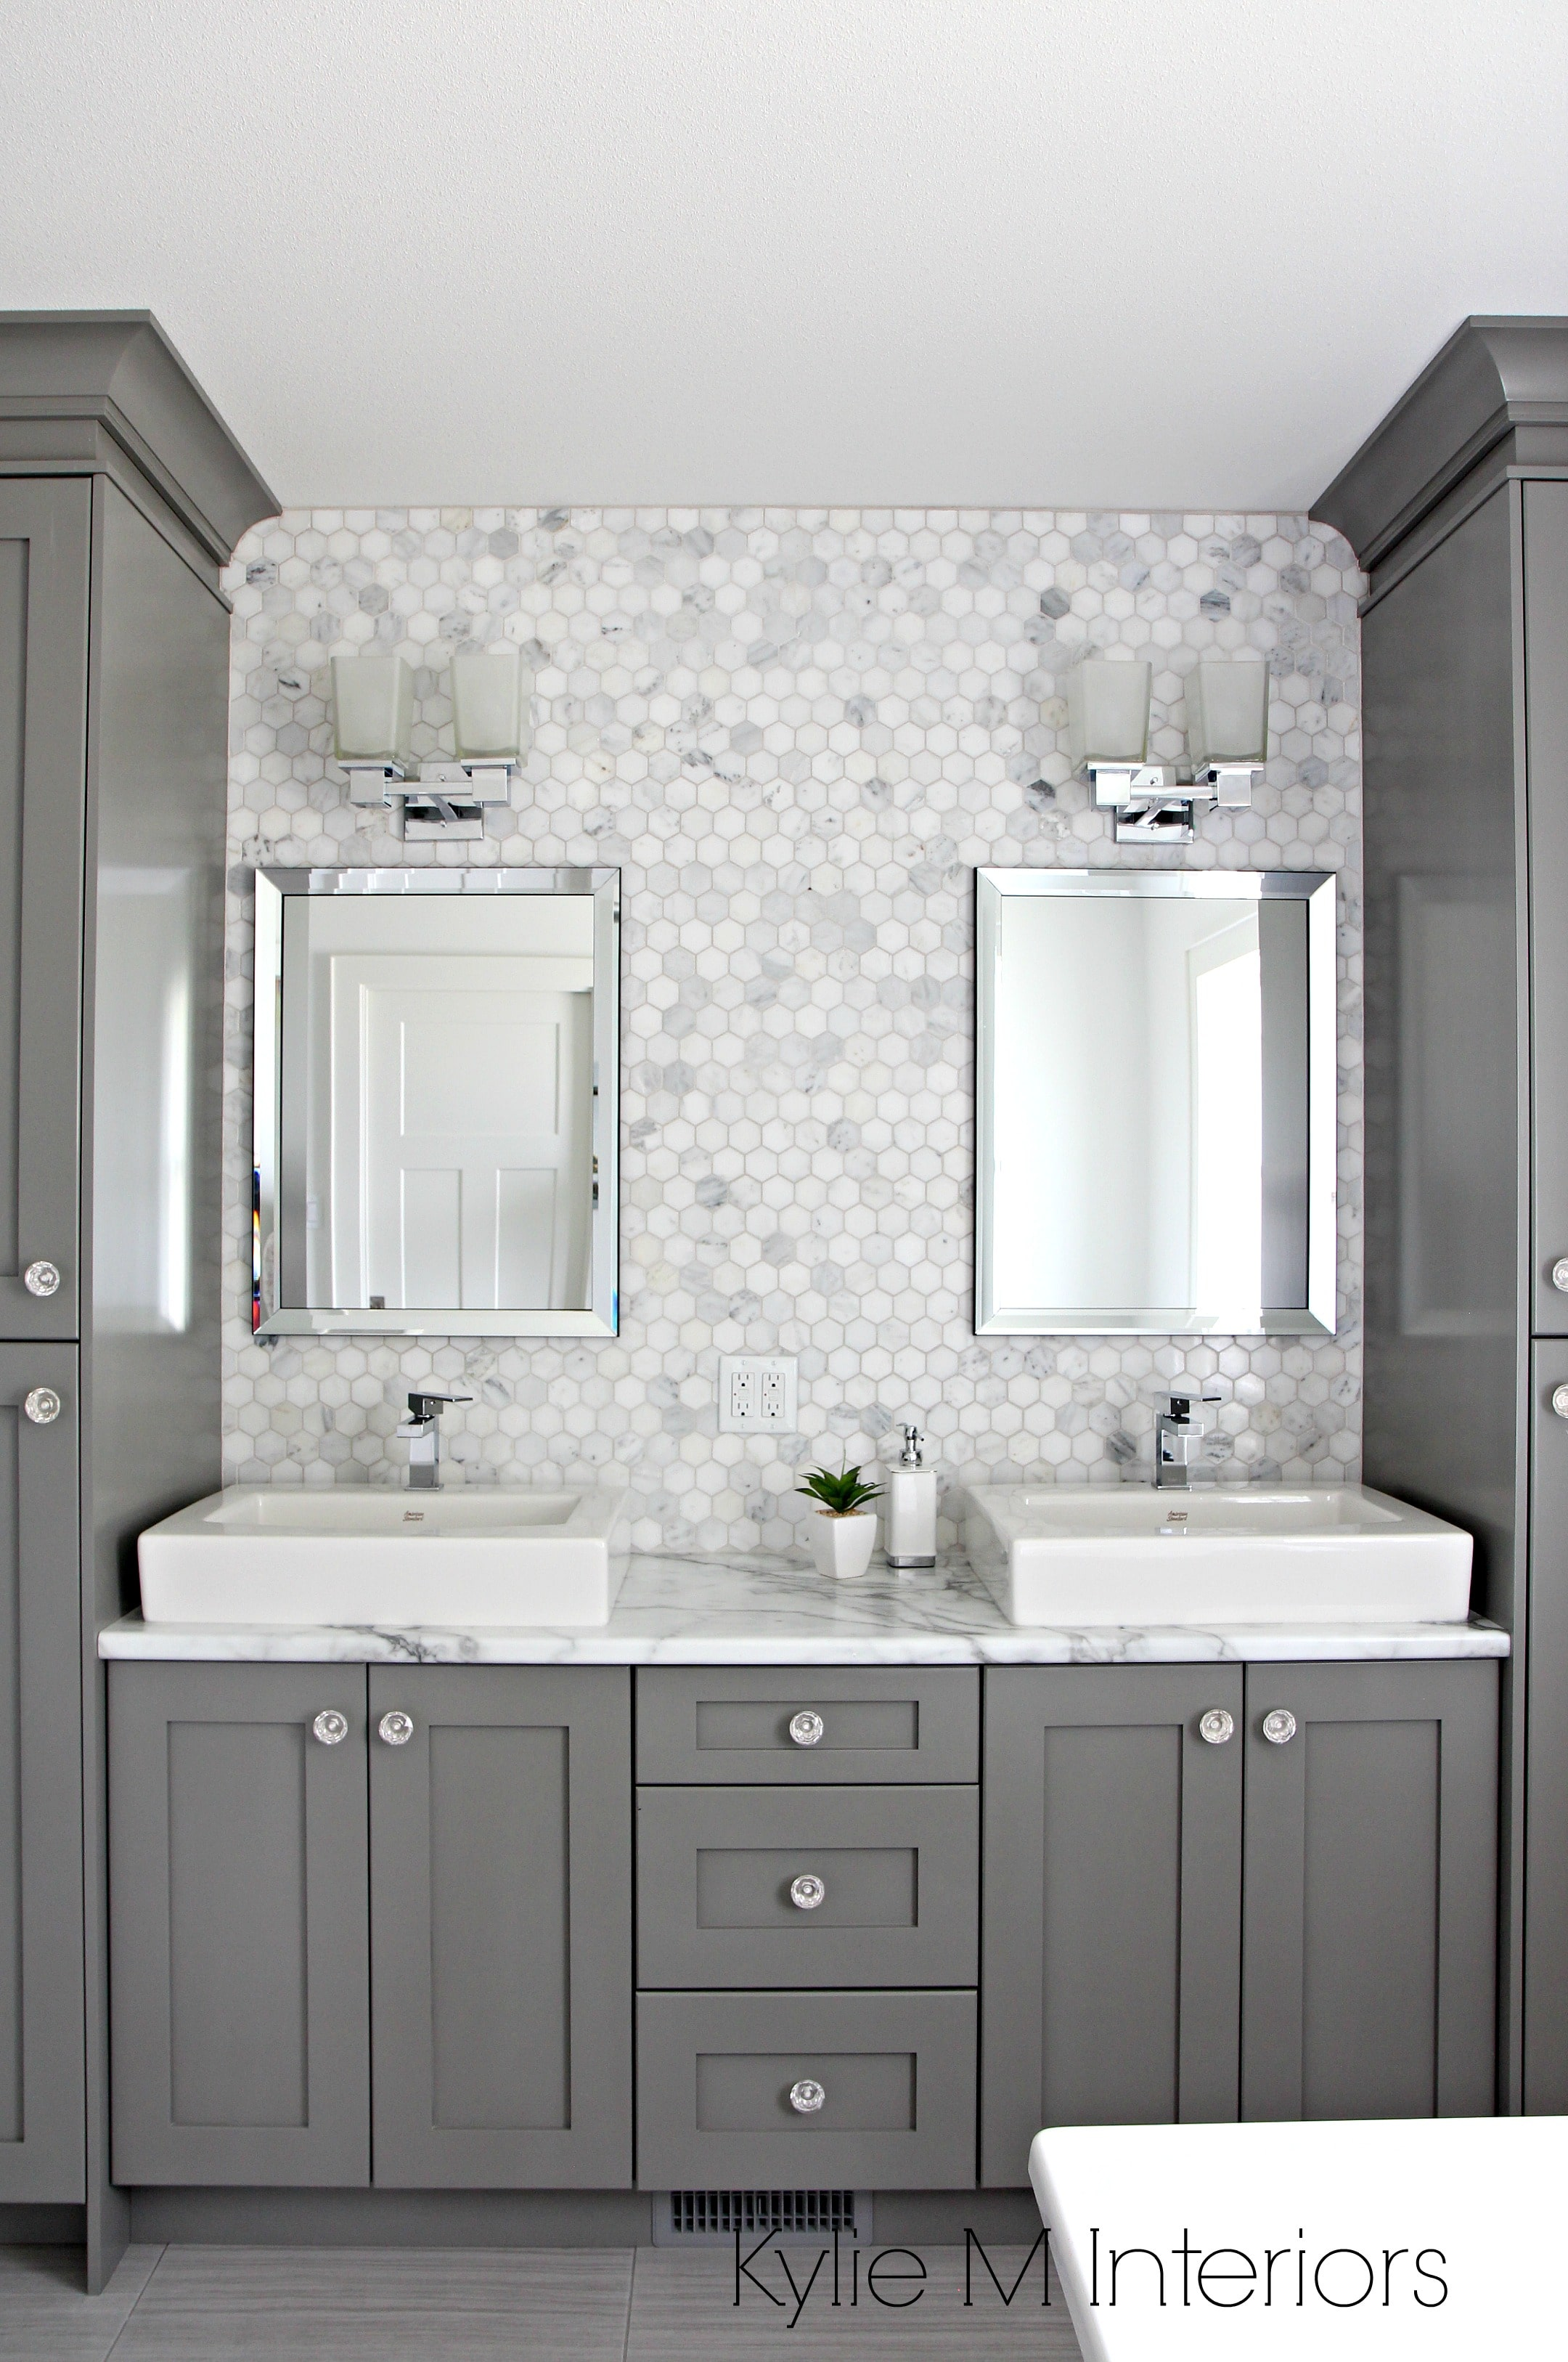 Double vanity in bathroom painted Benjamin Moore Chelsea Gray